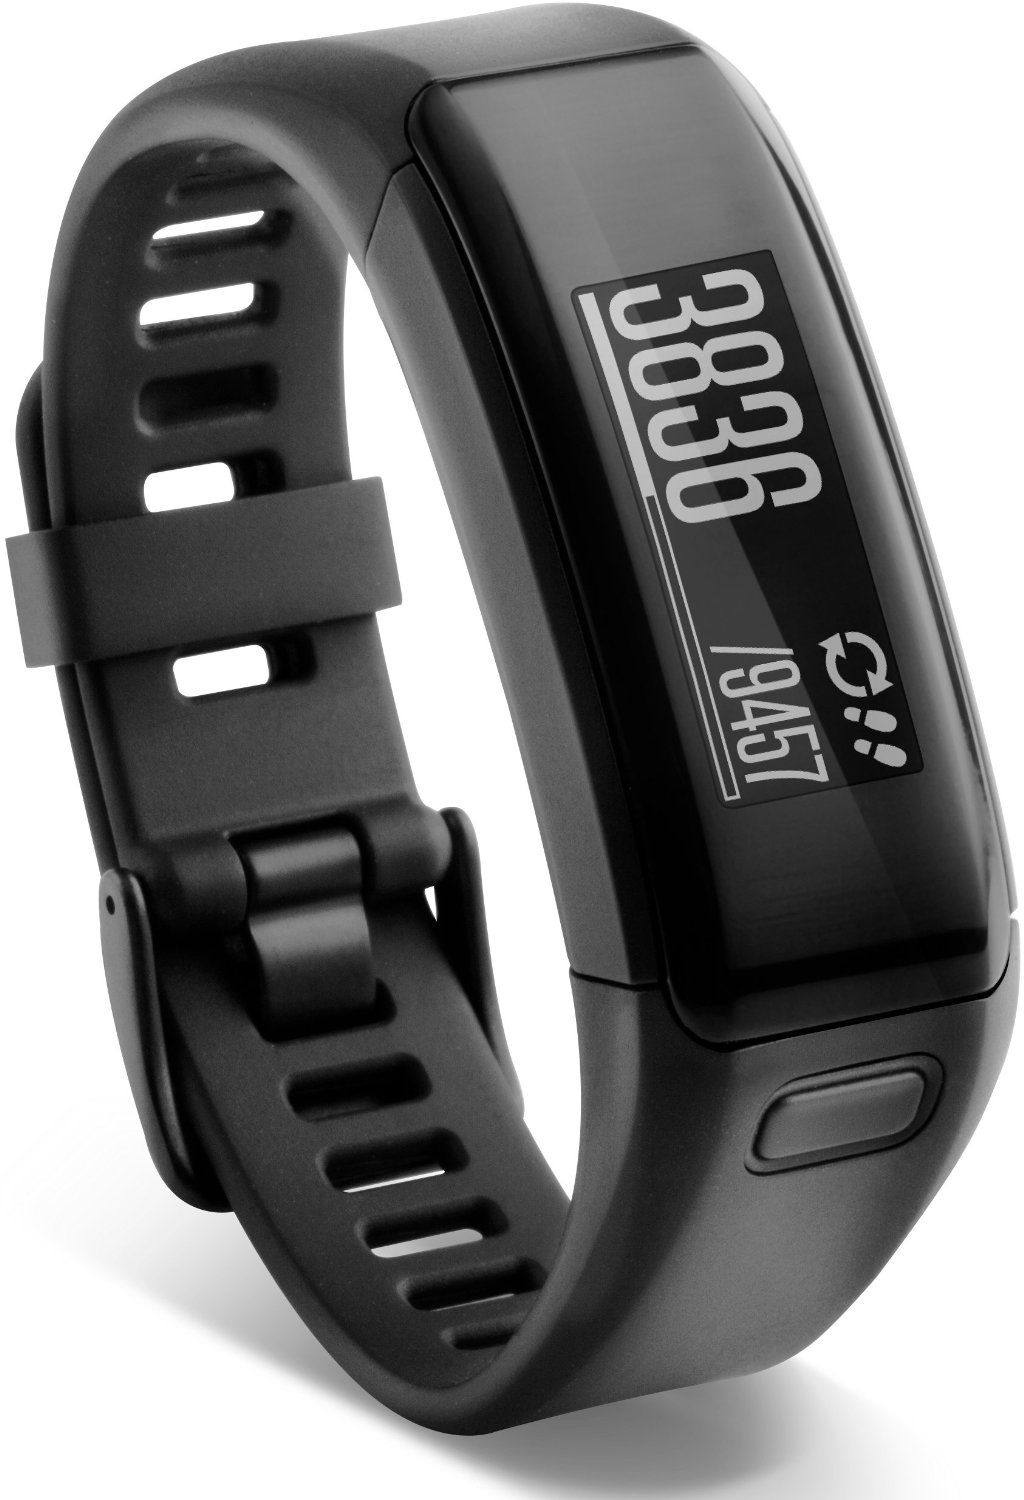 Garmin 010-01955-08 Vivosmart HR Activity